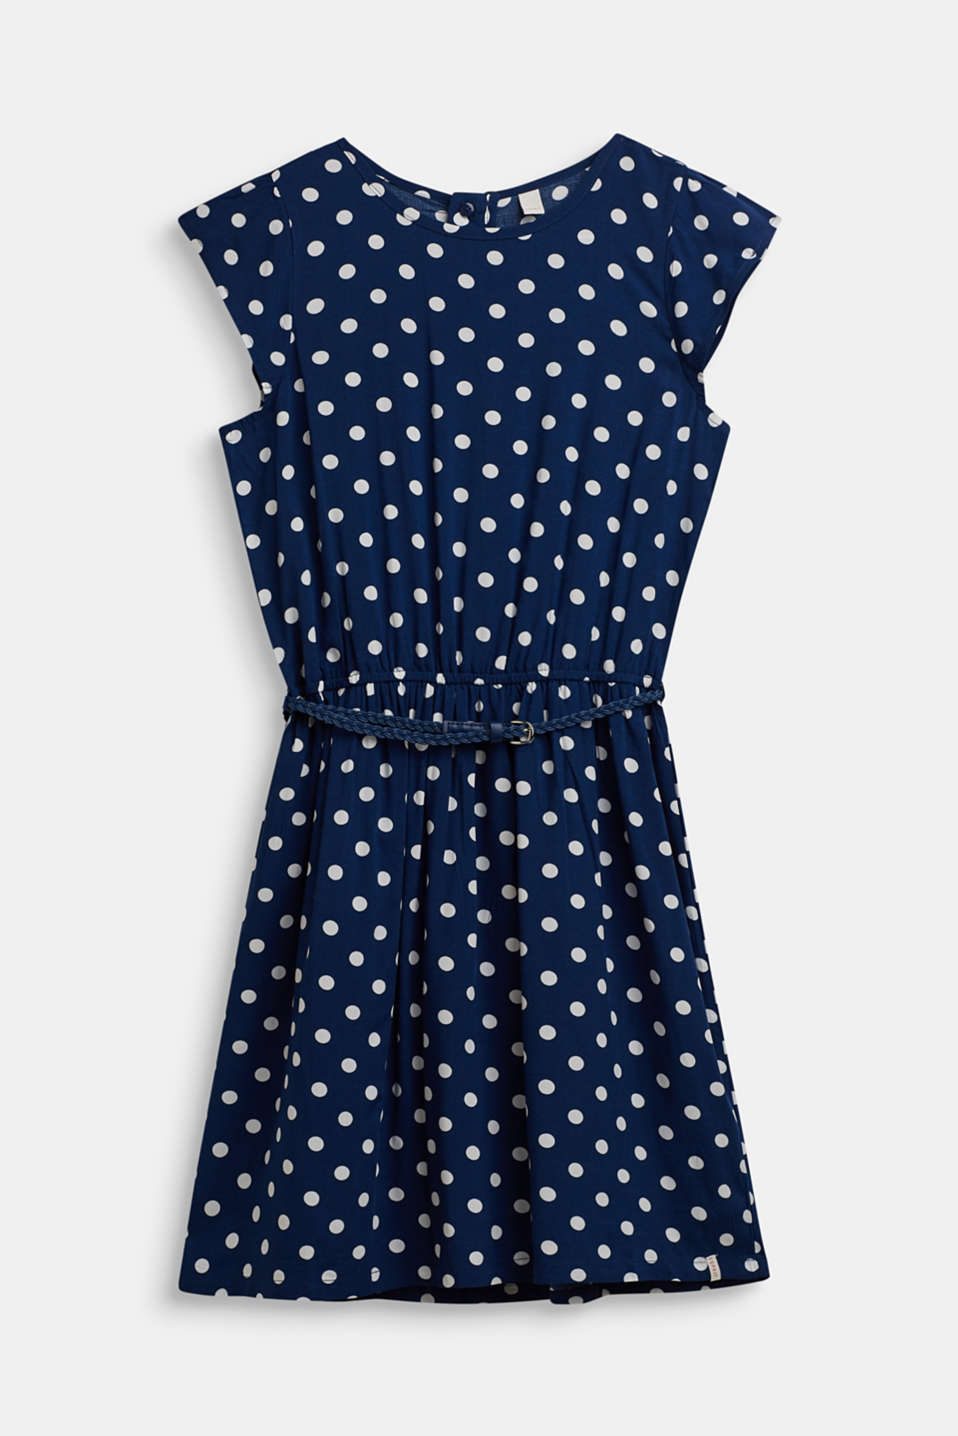 Esprit - Polka dot dress with braided belt